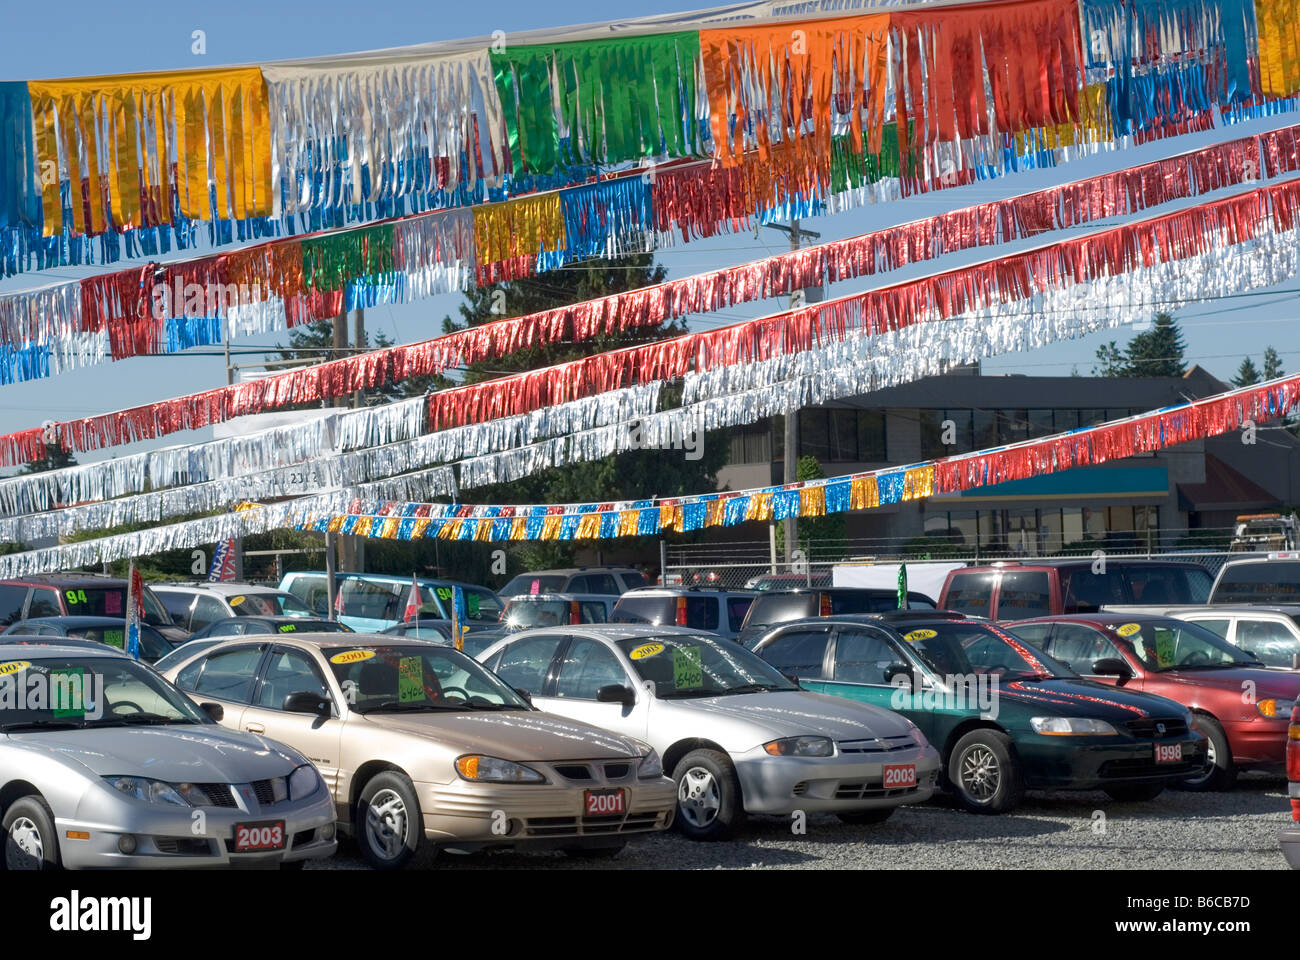 Used Car Lot >> Used Car Lot With Shiny Banners Overhead Stock Photo Royalty Free